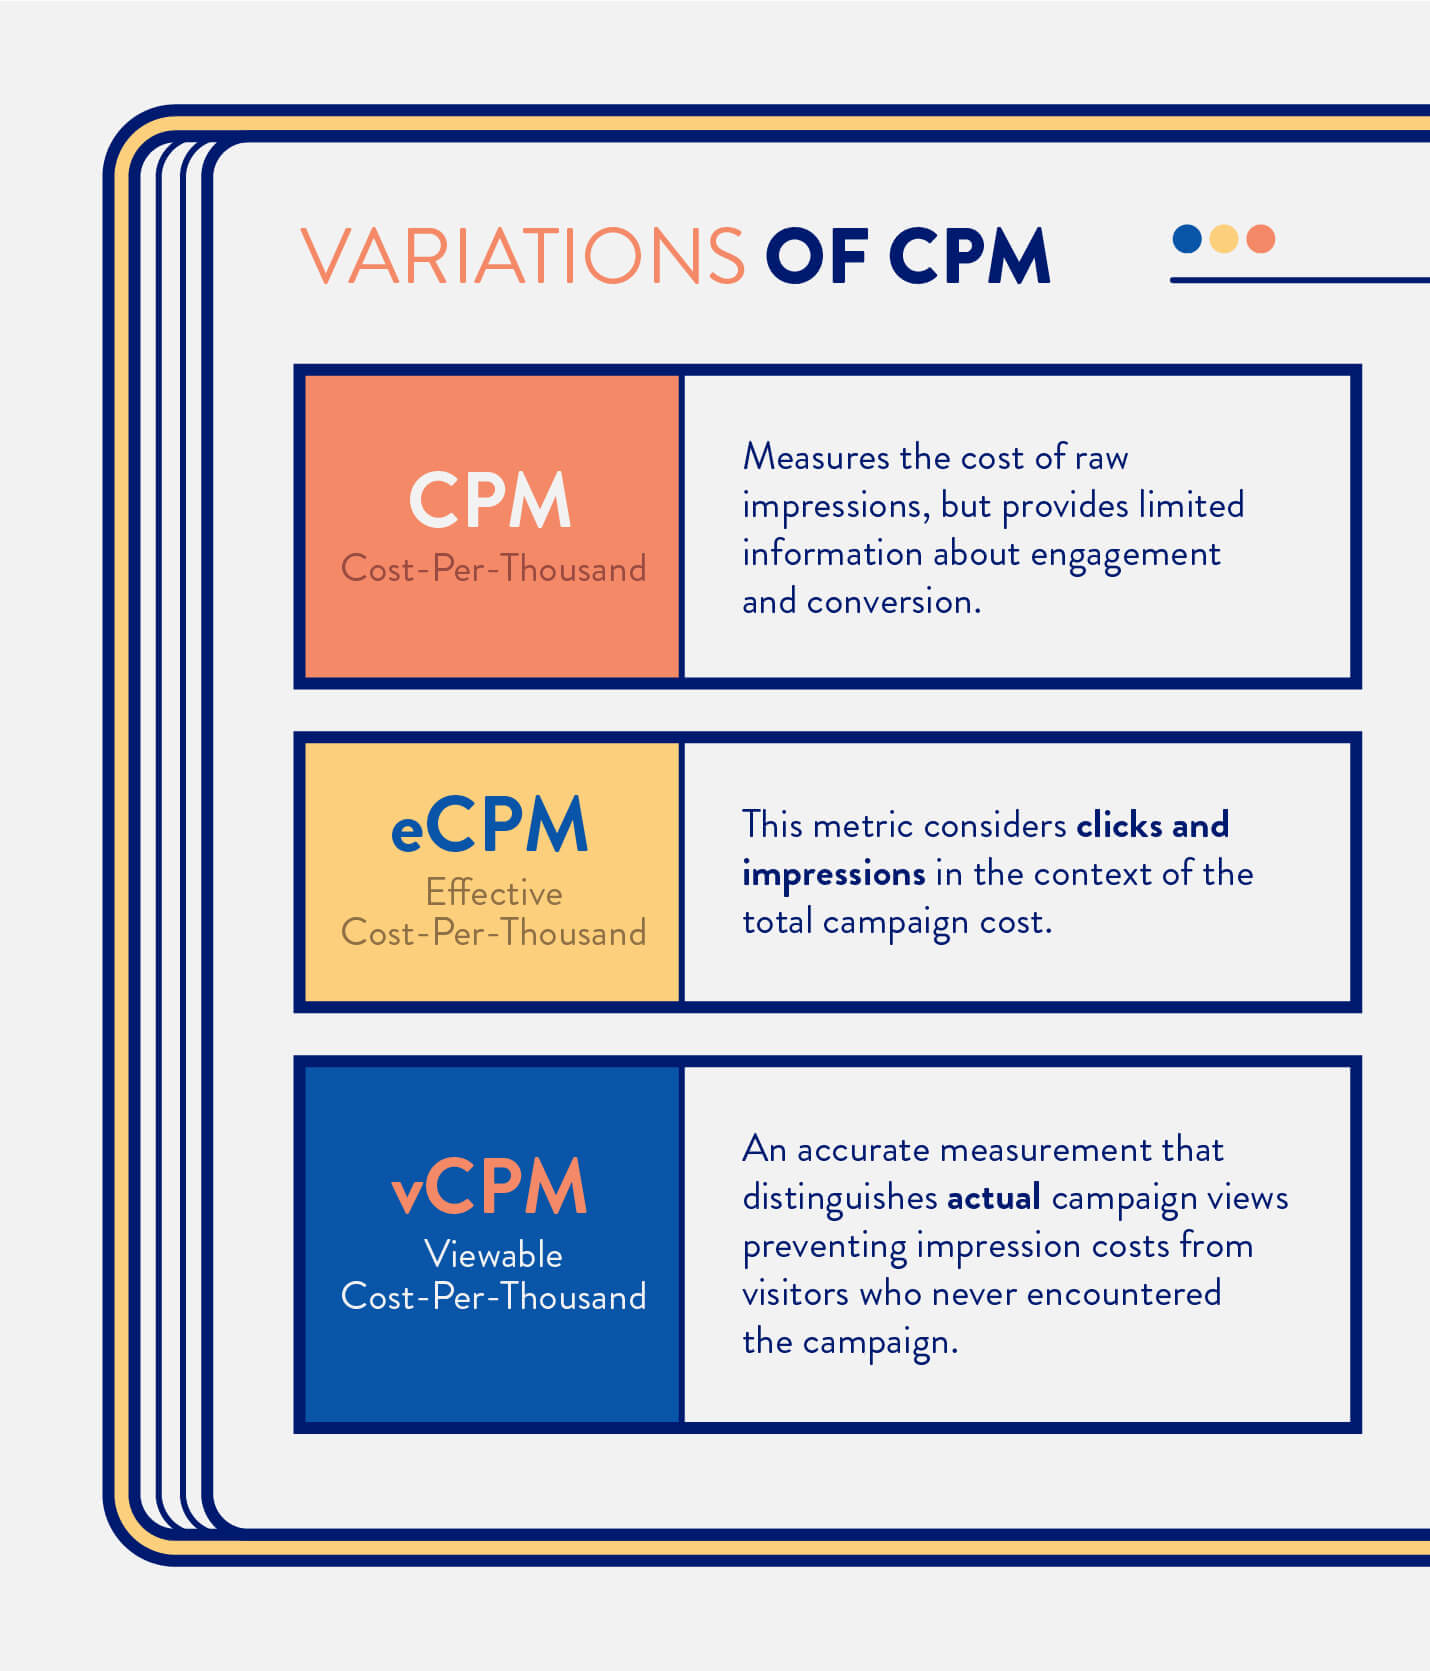 comparing CPM, eCPM, and vCPM variations of effective and viewable cost per thousand impressions